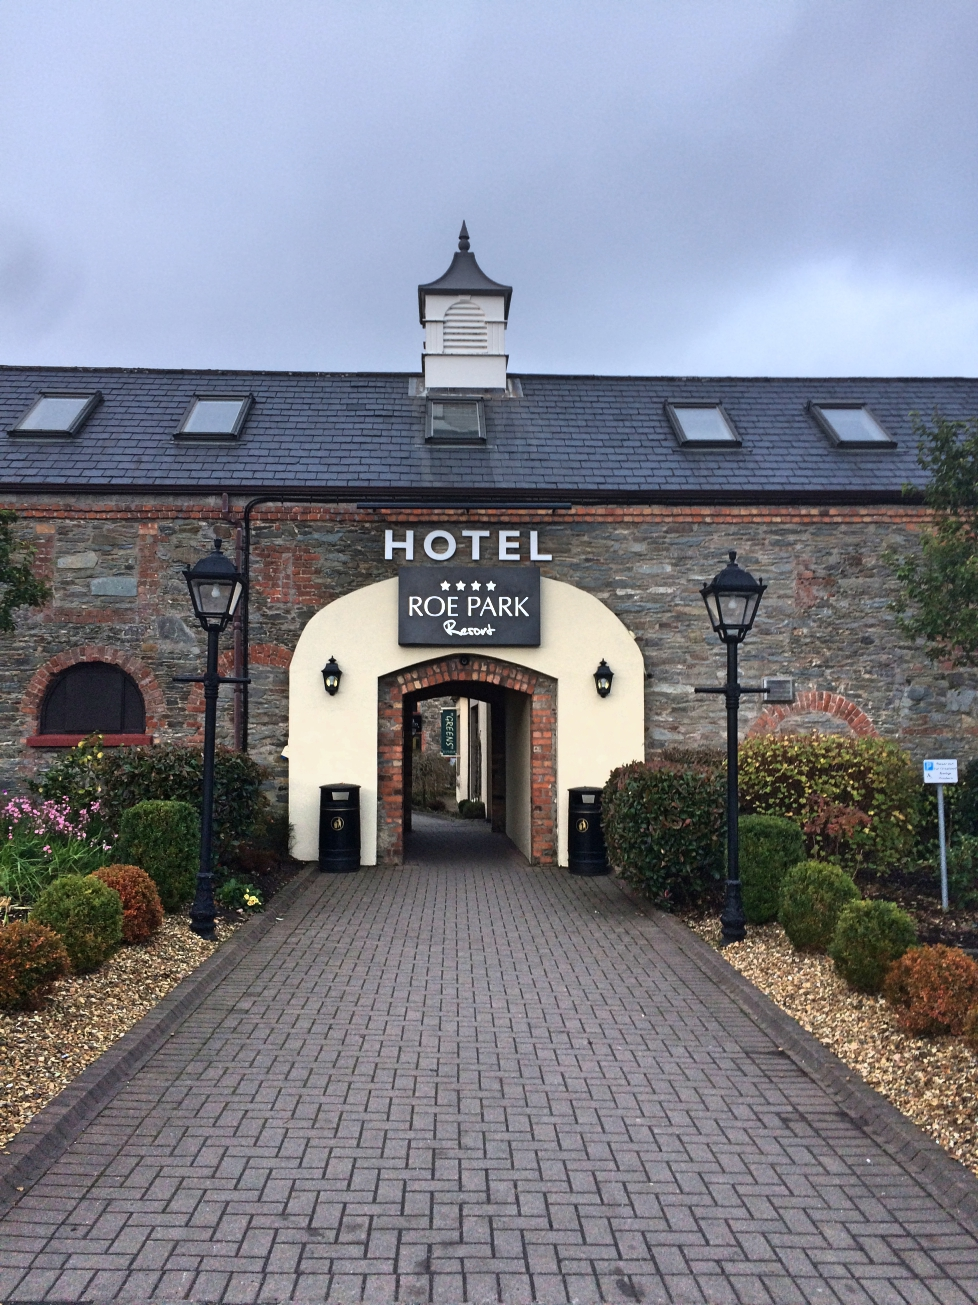 limavady_roe_park_resort_hotel_niexplorer_ni_explorer_northern_ireland (38).jpg